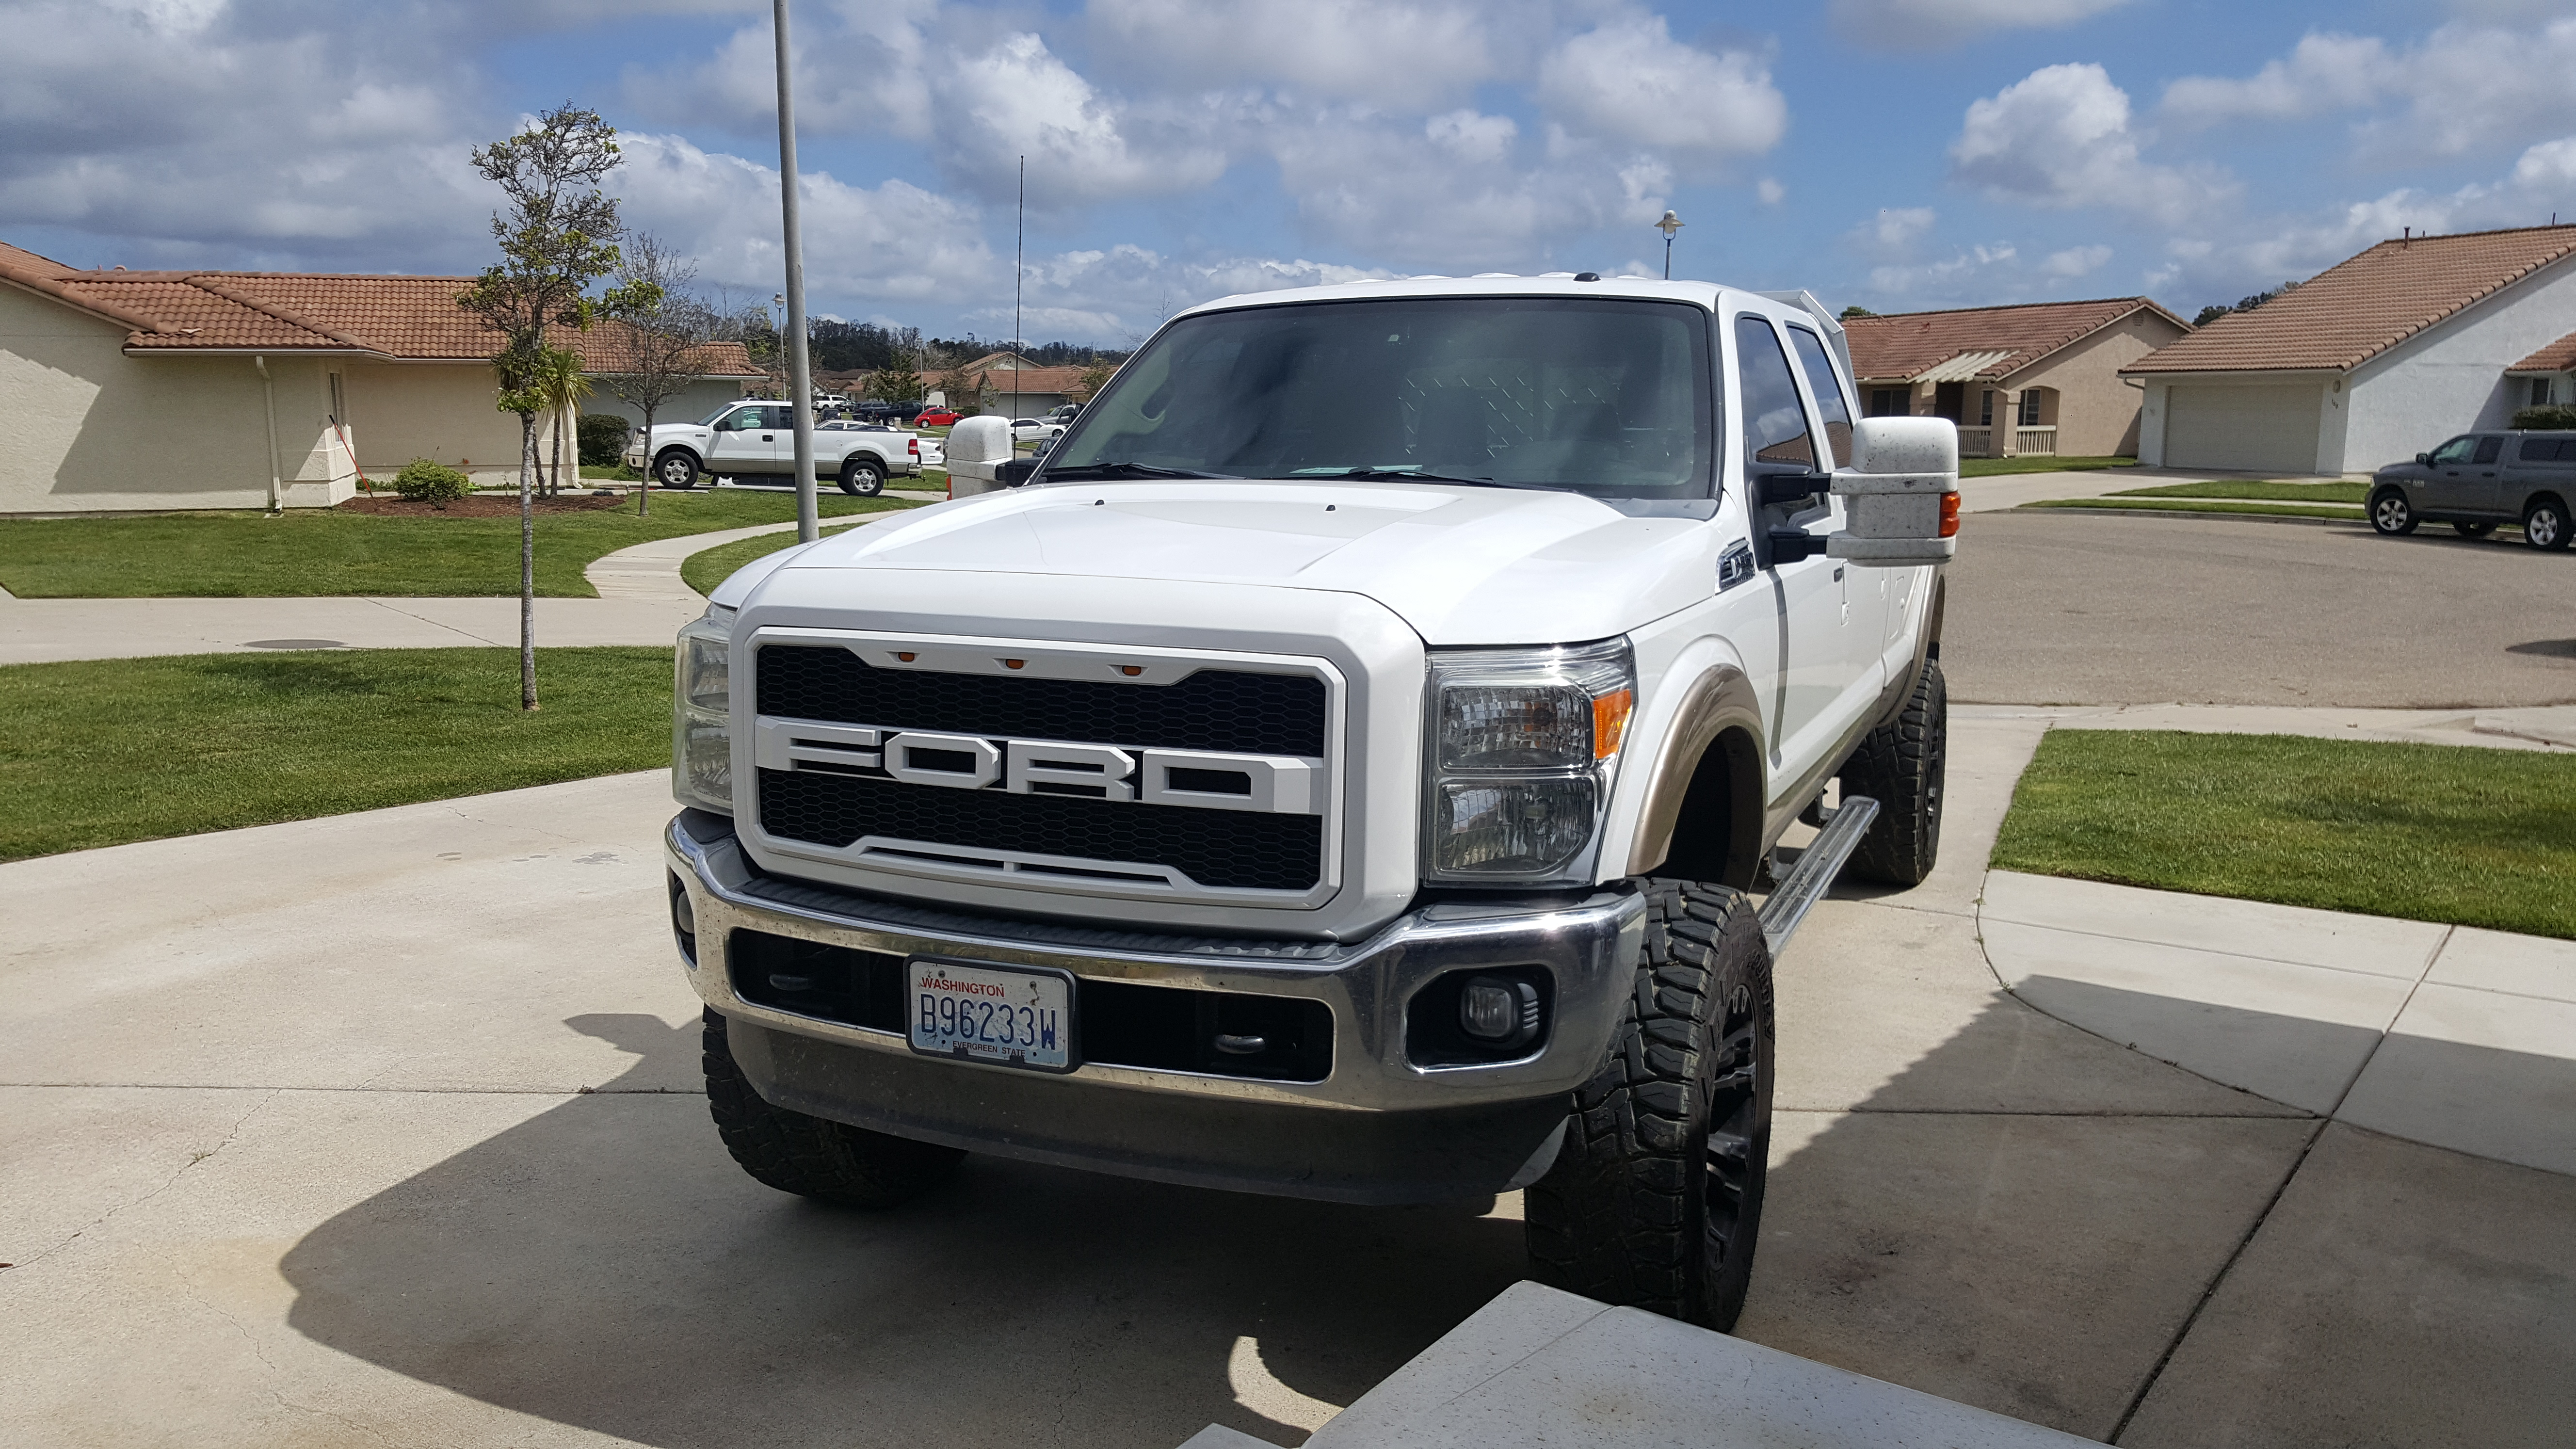 Ford Raptor Grille For F250 | 2018, 2019, 2020 Ford Cars